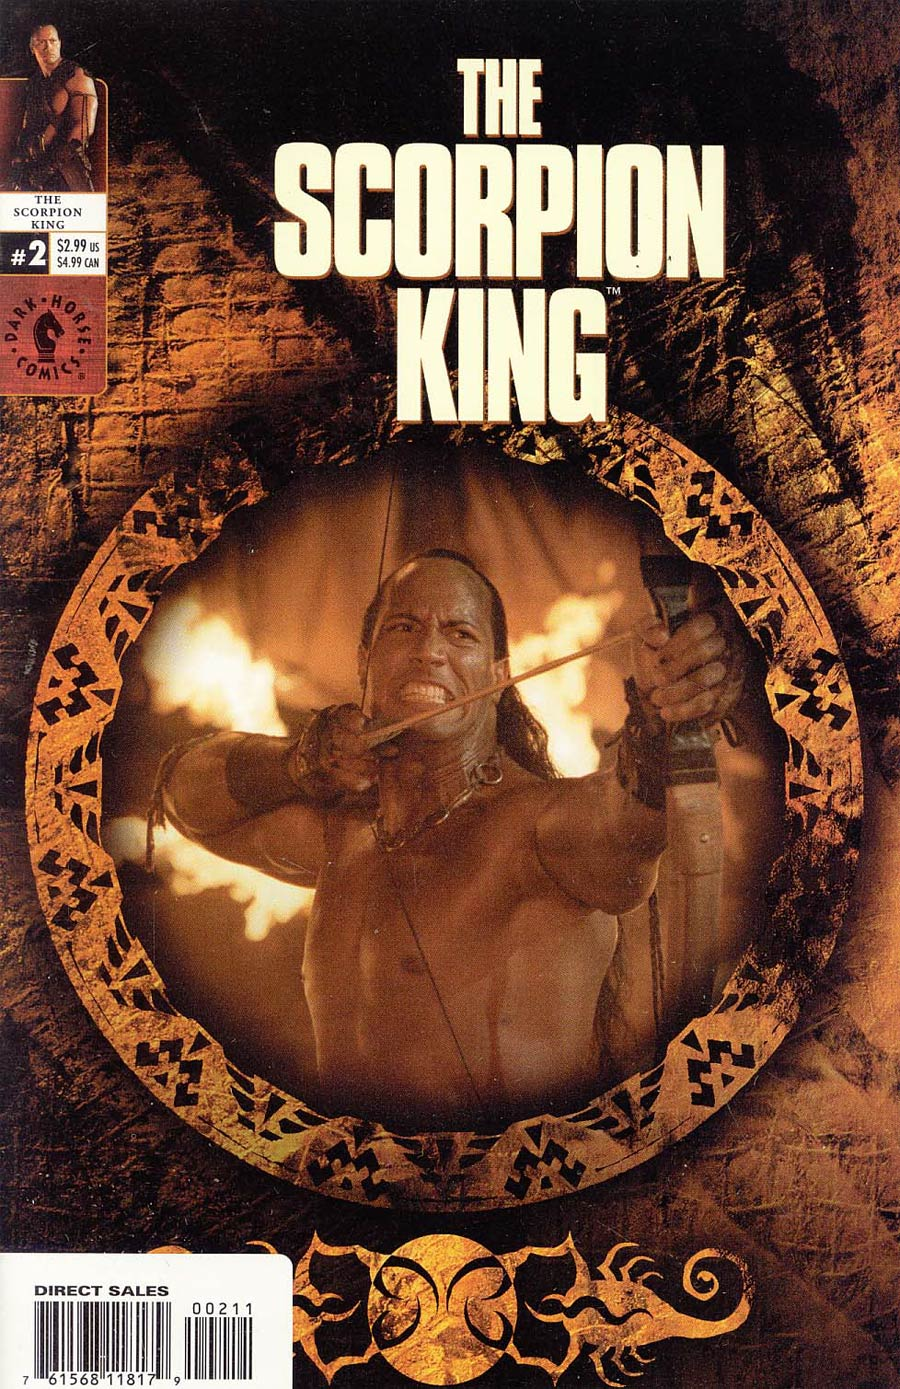 Scorpion King #2 Cover B Regular Photo Cover